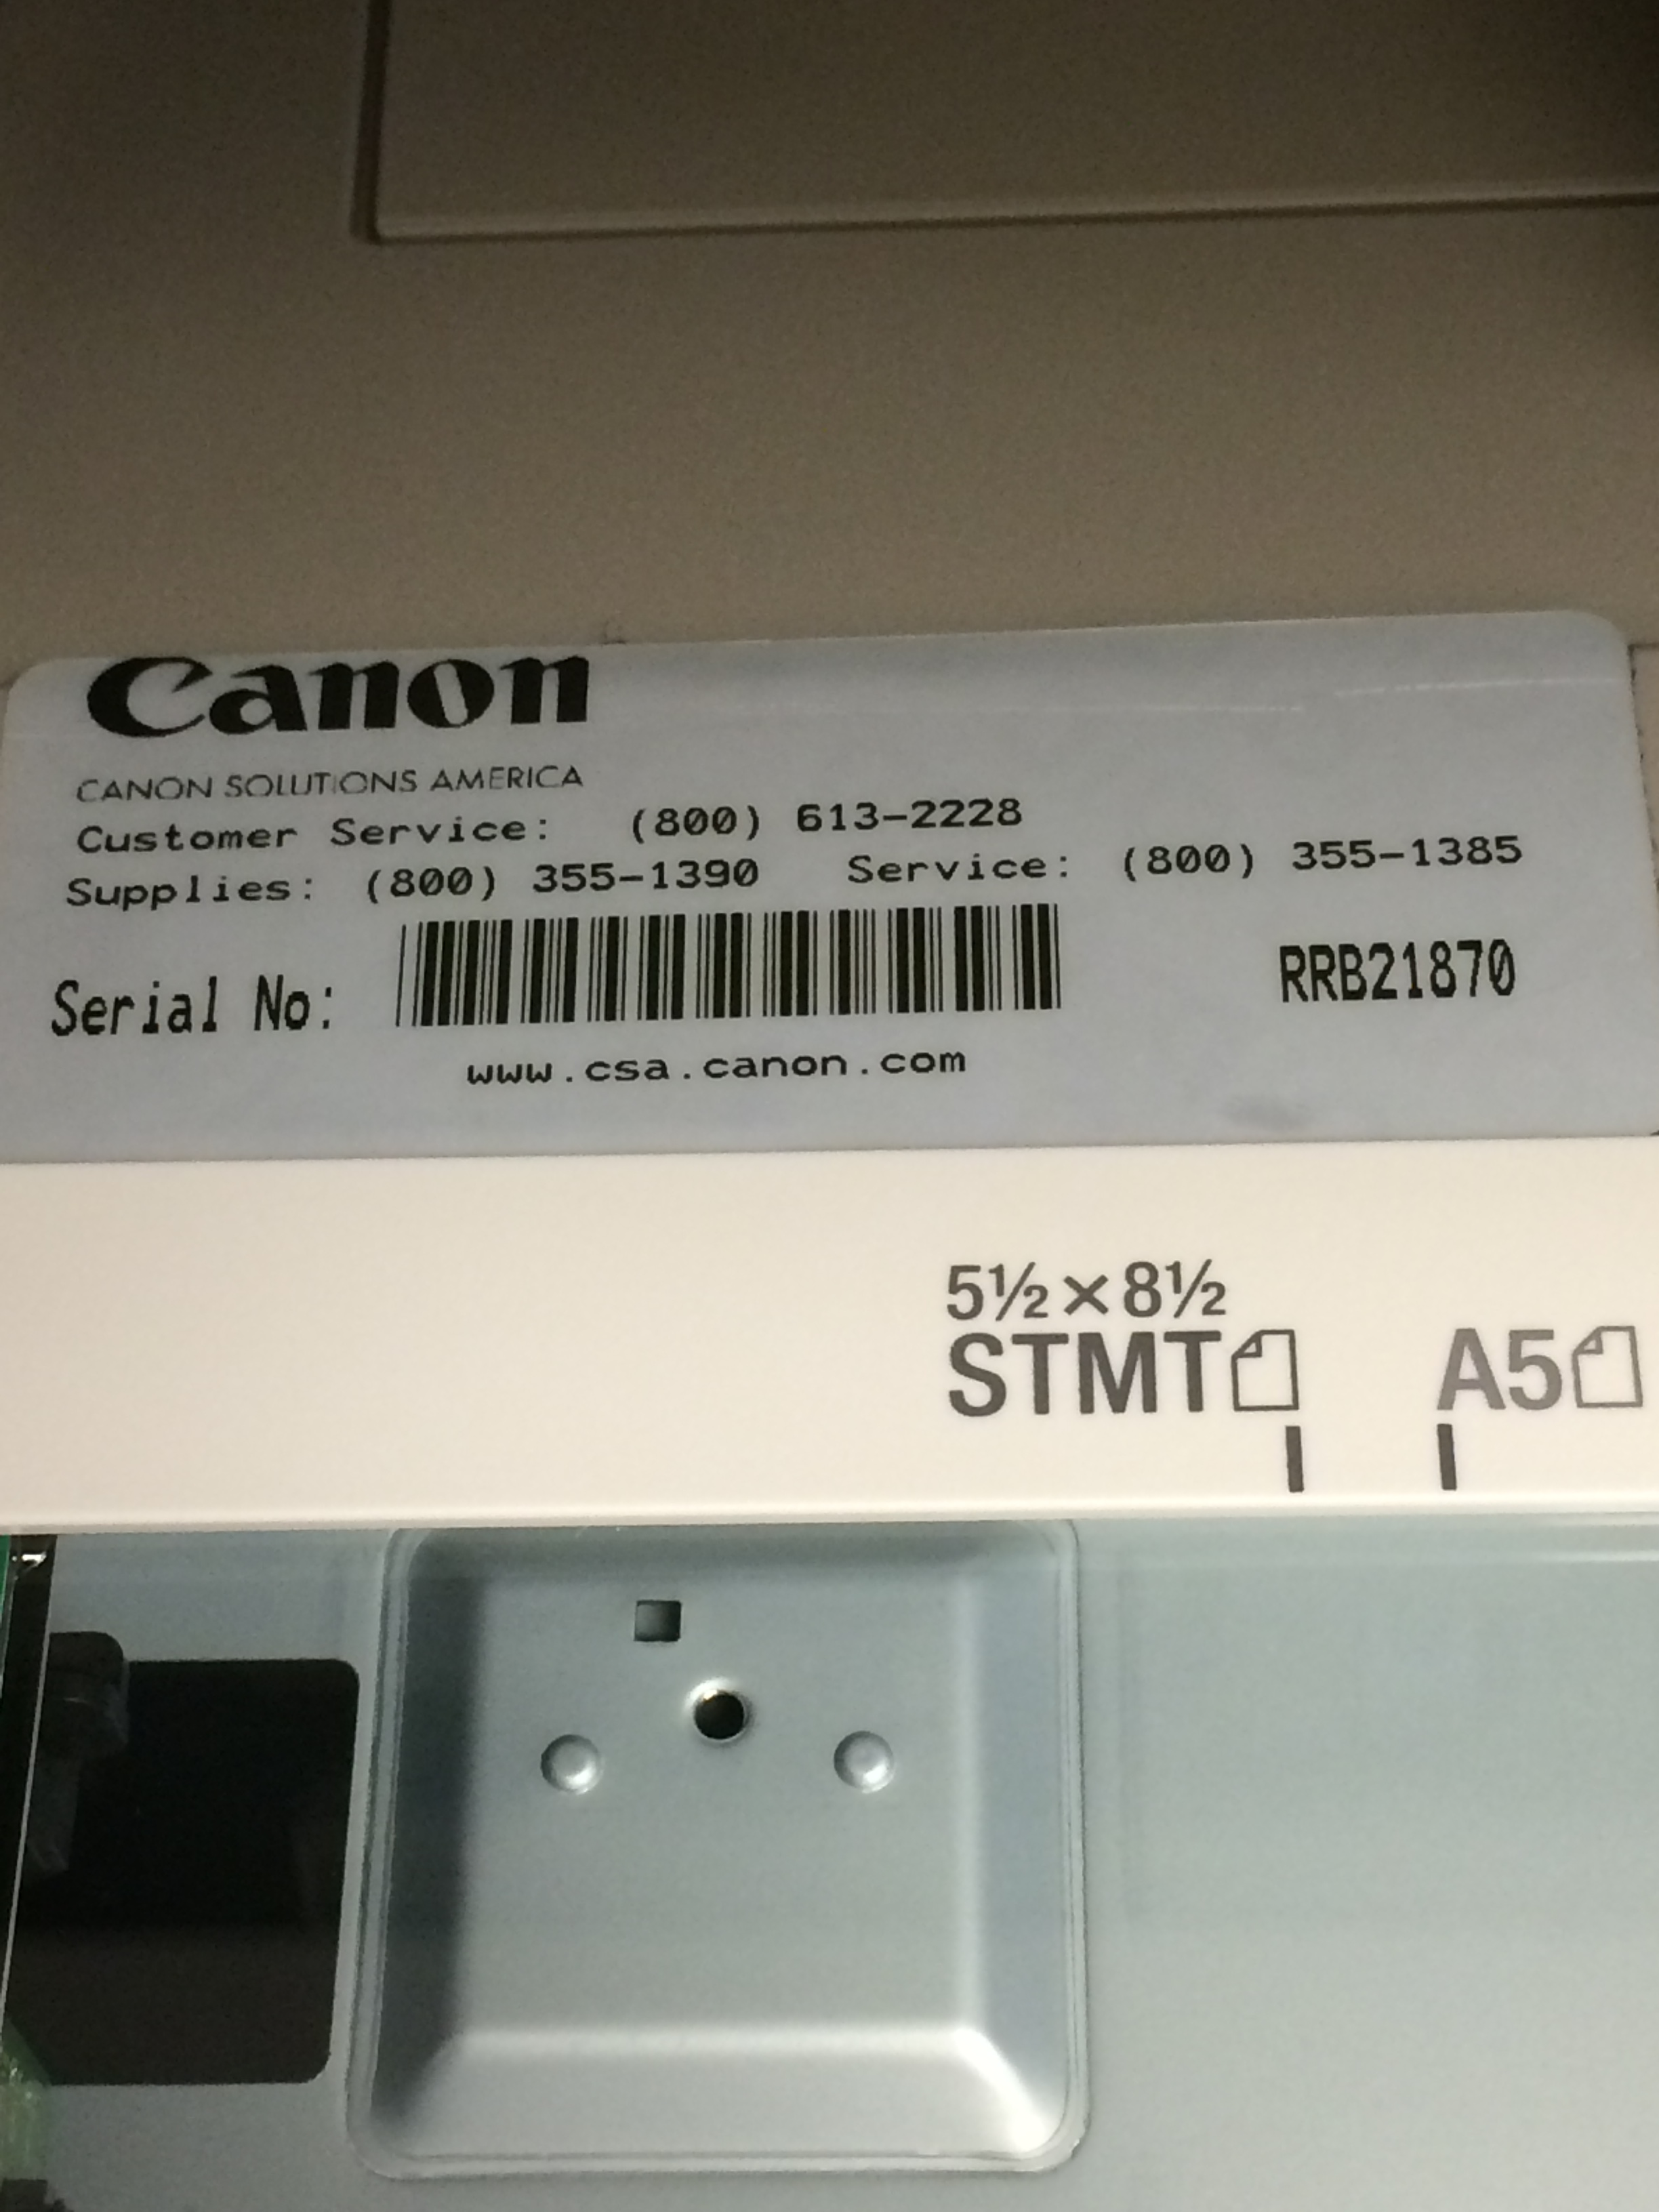 An example of a Canon serial number.